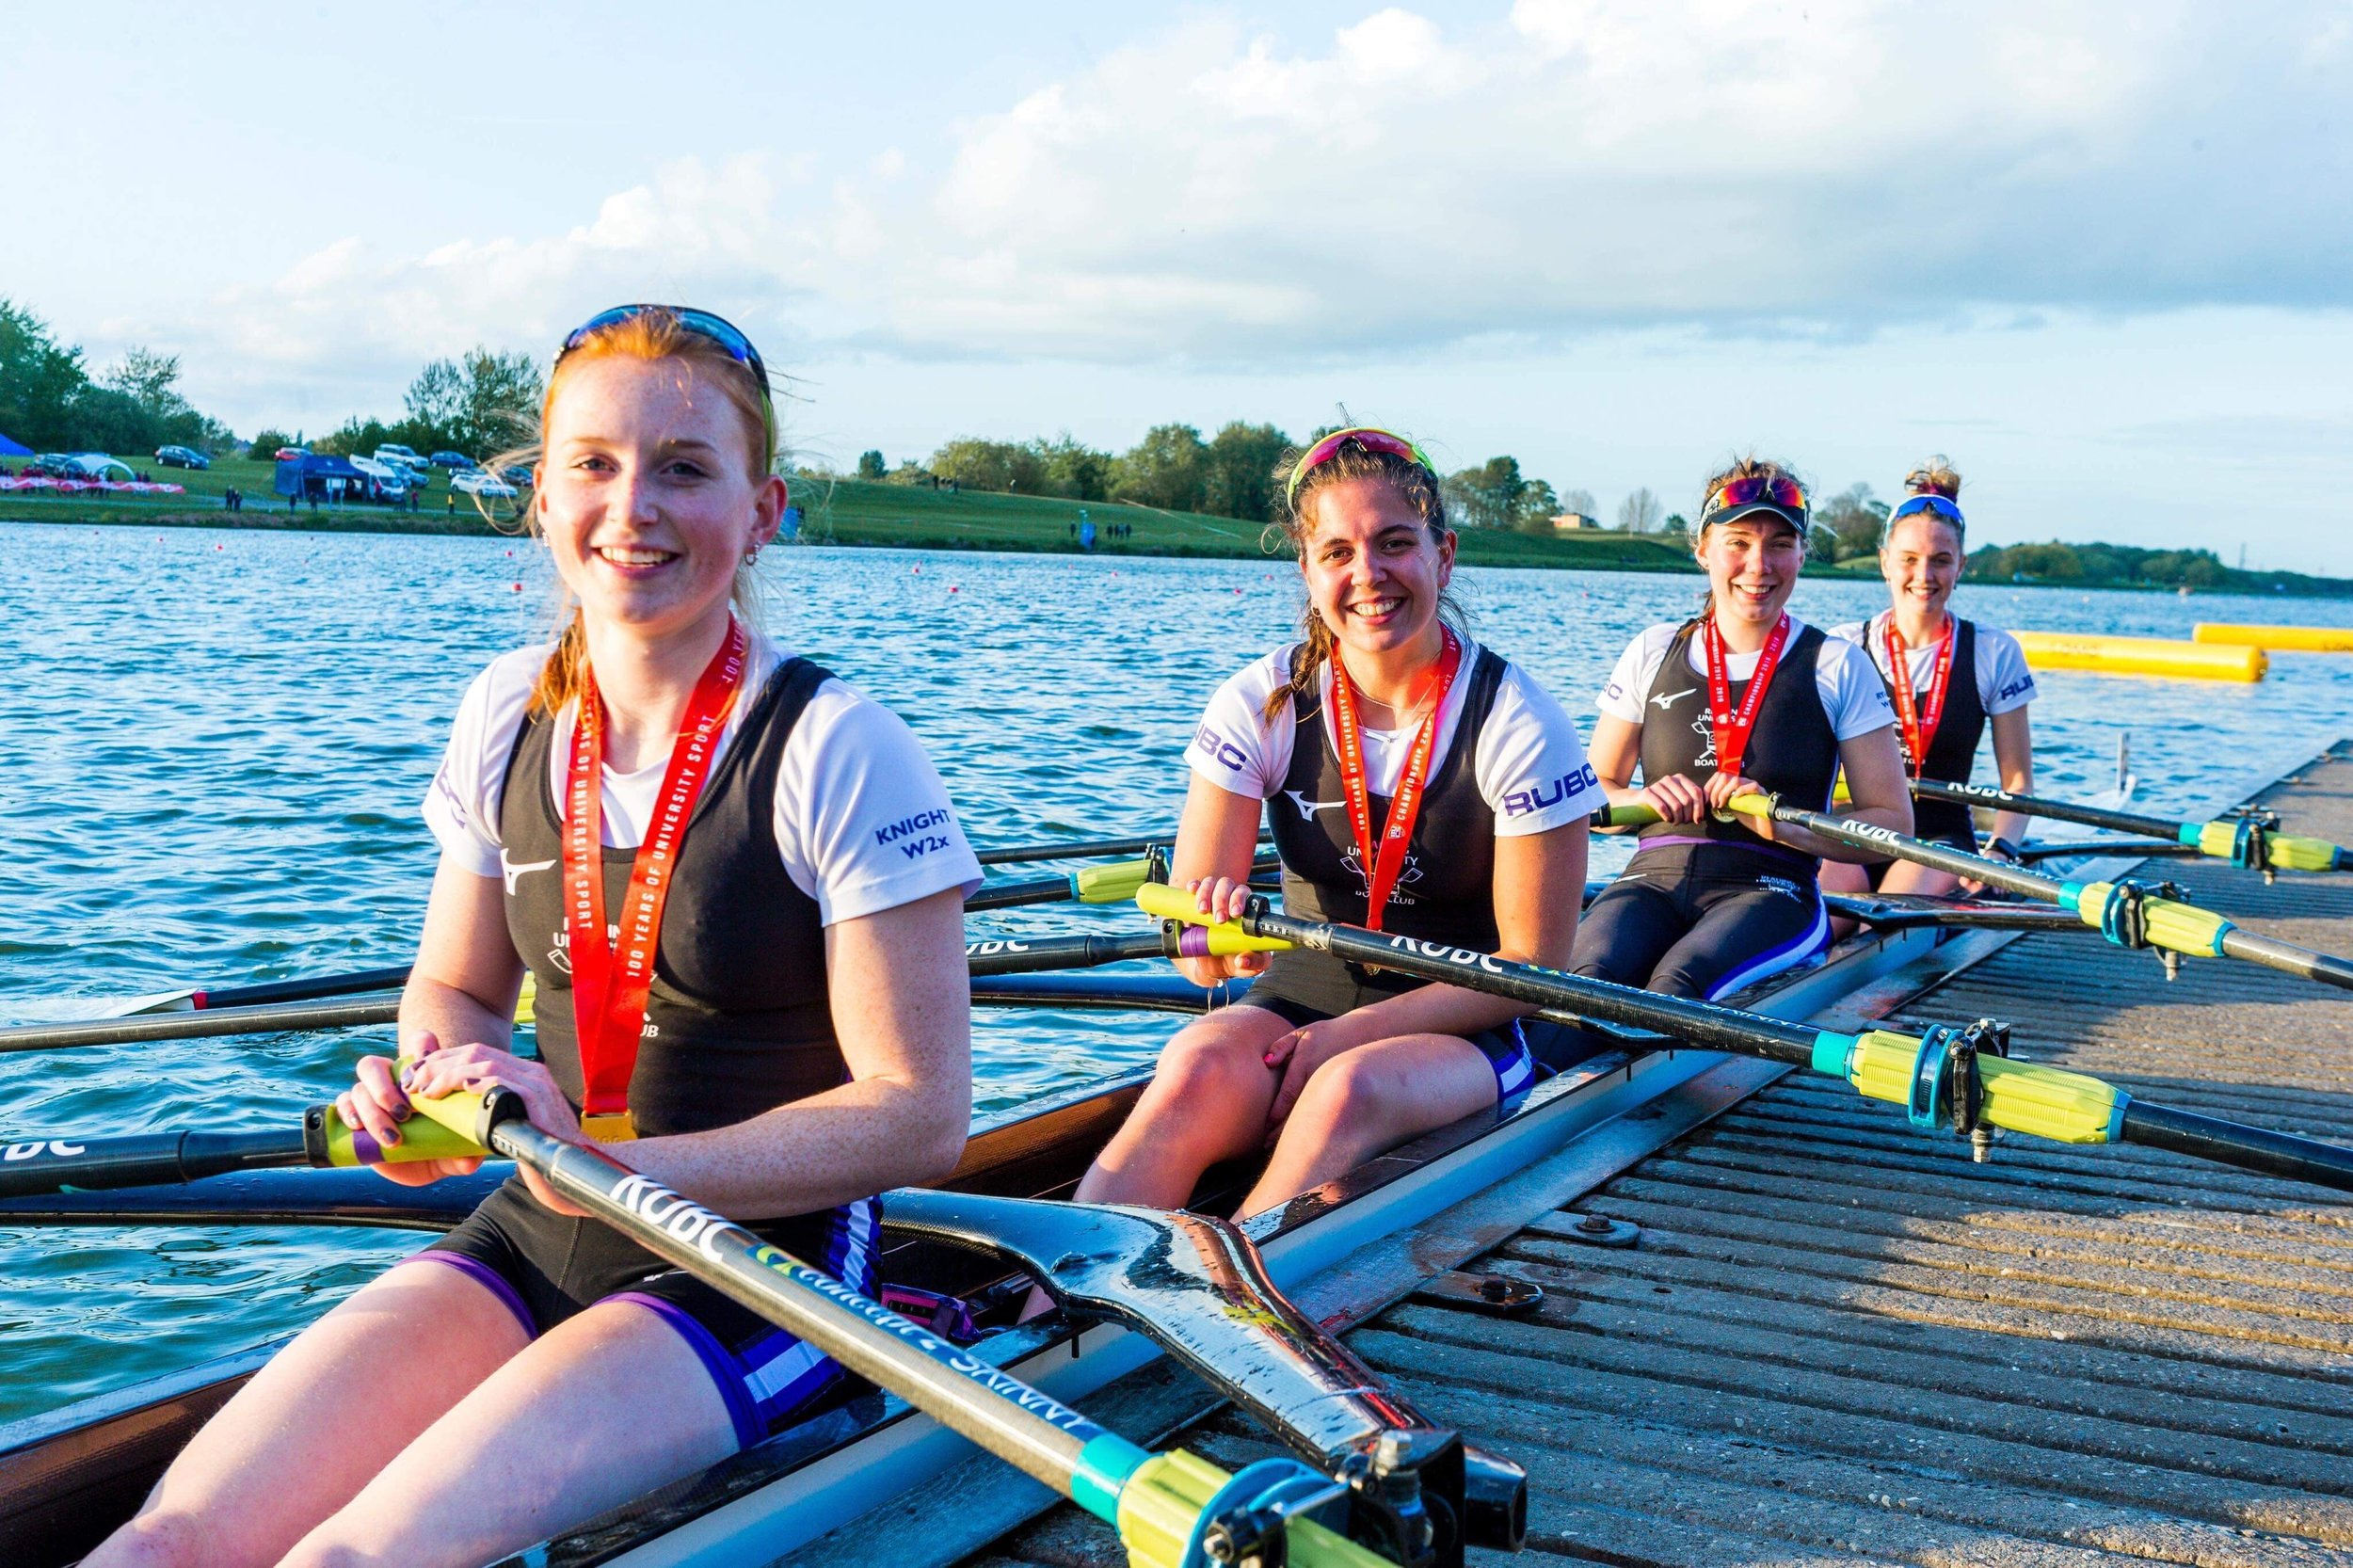 Women's Championship 4x at BUCS Regatta 2019 - 1st